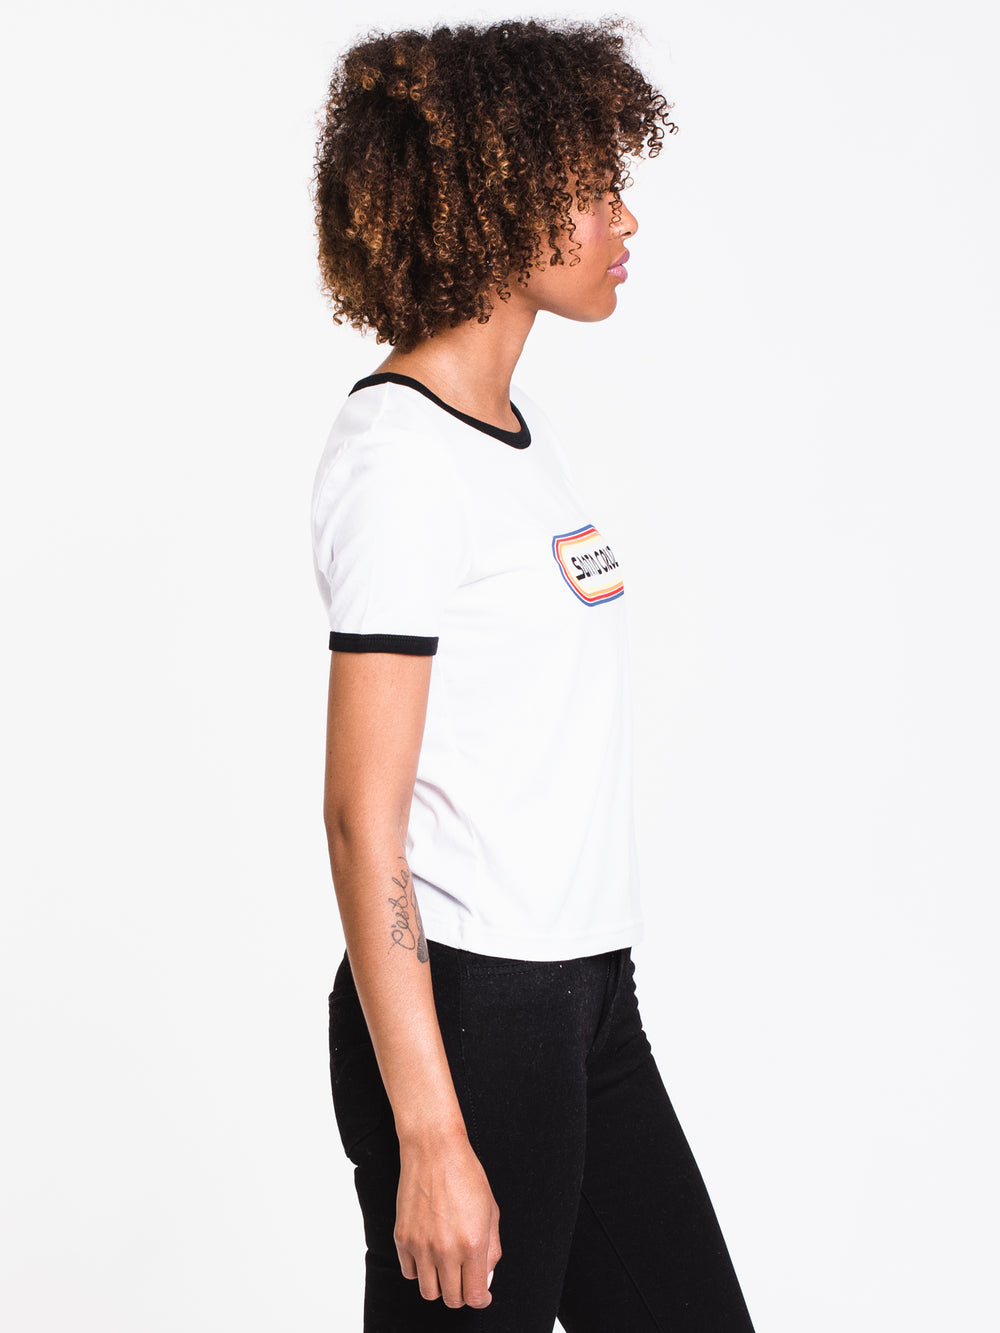 WOMENS WOODSTOCK SHORT SLEEVE RINGER TEE - W/B